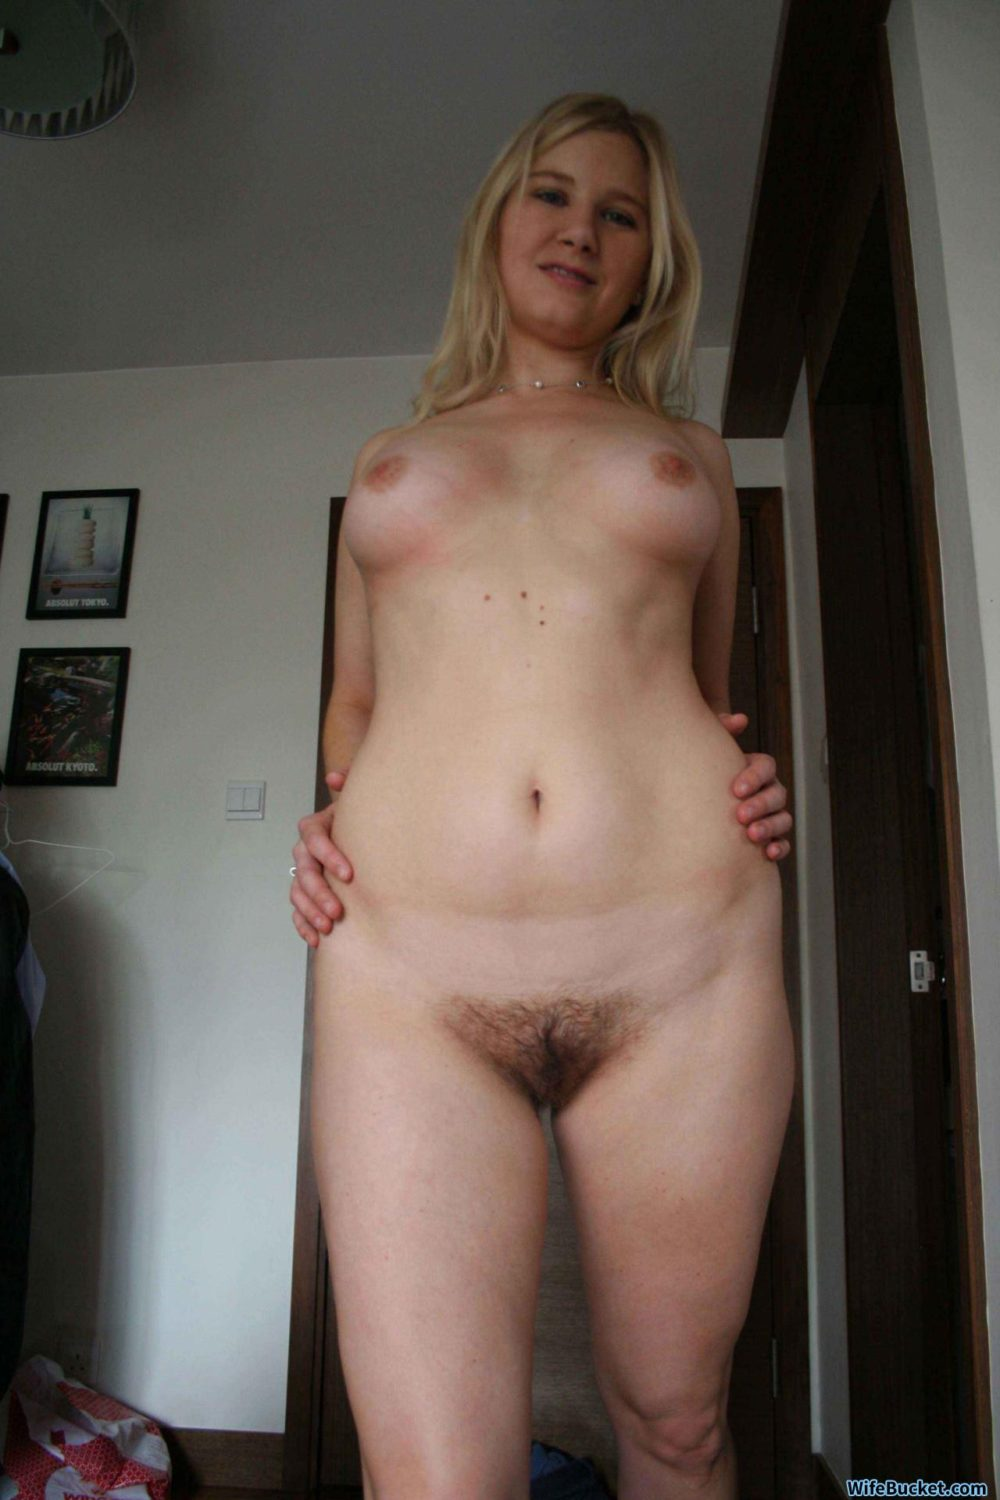 Chubby blonde girls fucked gallery